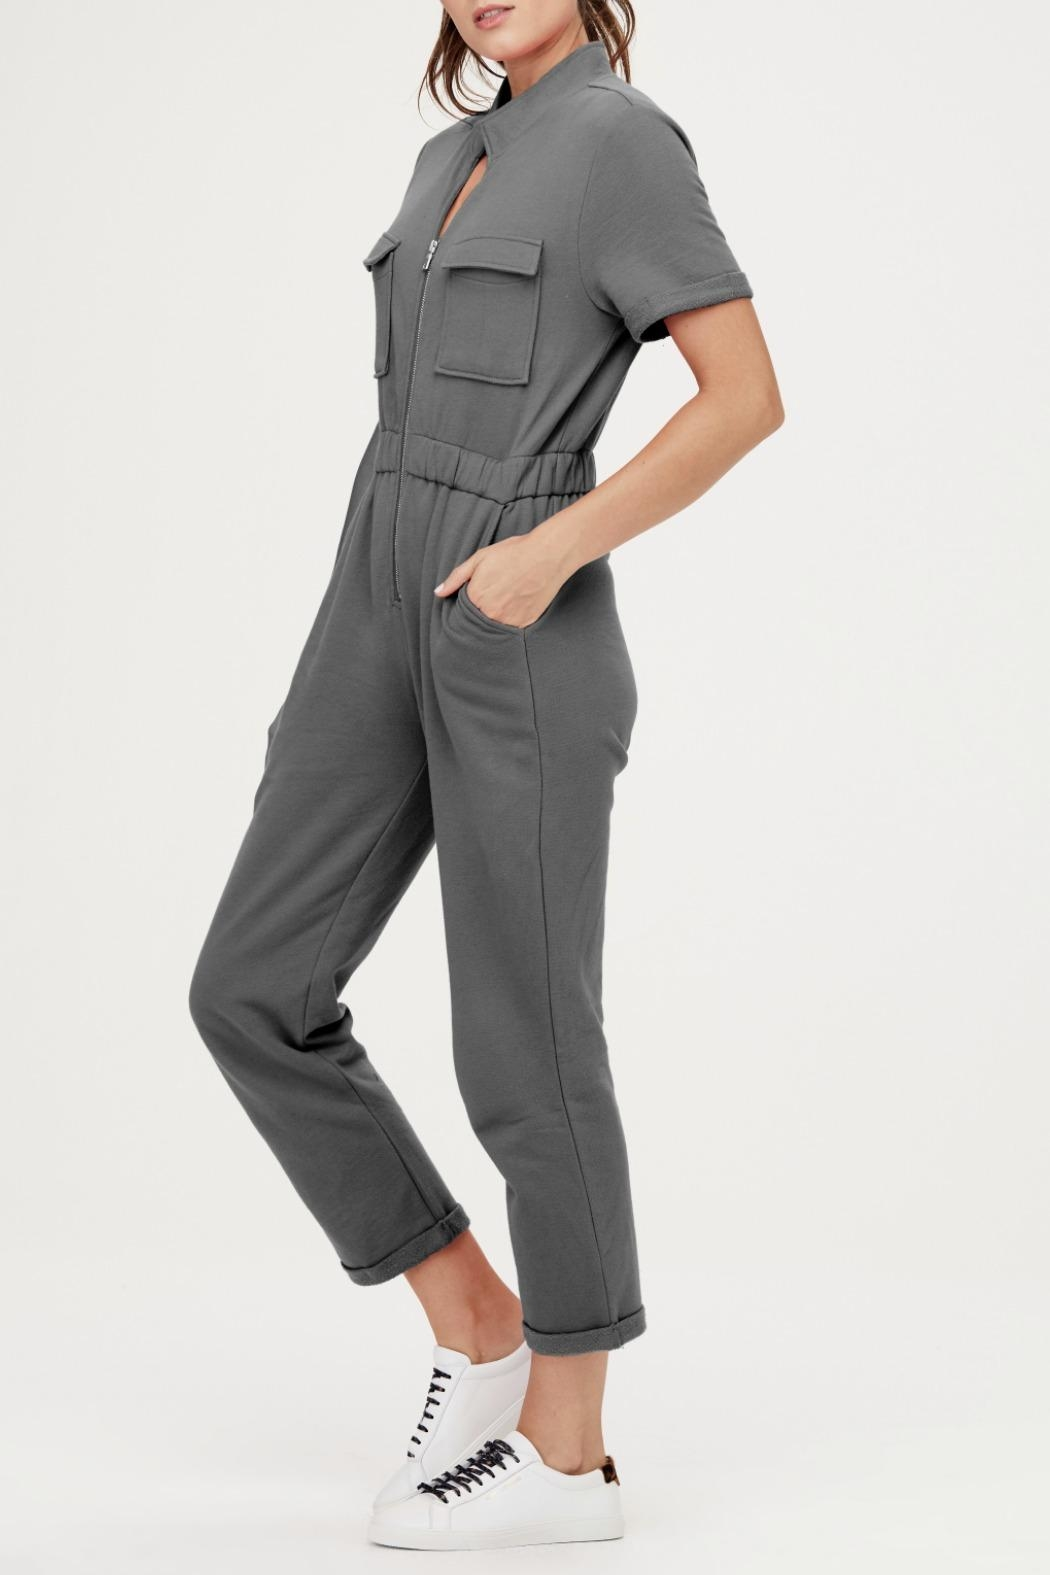 David Lerner New York Cassie Cargo Jumpsuit - Front Full Image